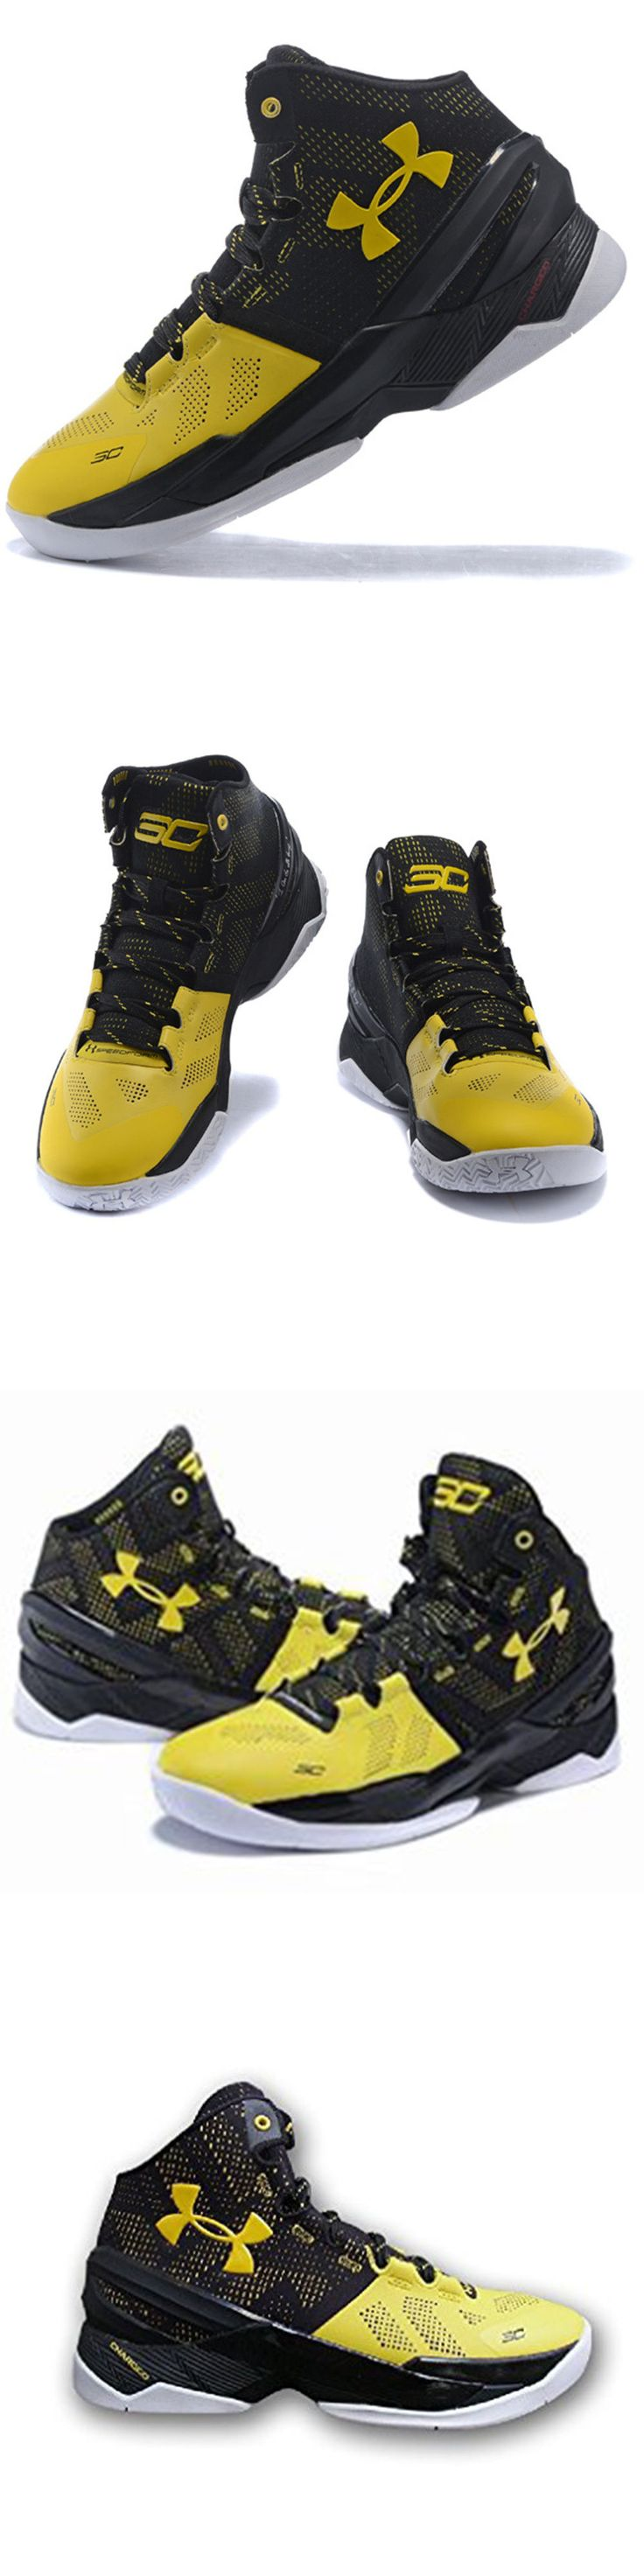 Men 158971: Under Armour Stephen Curry 2 Long Shot Black Taxi 1259007 004 BUY IT NOW ONLY: $125.0